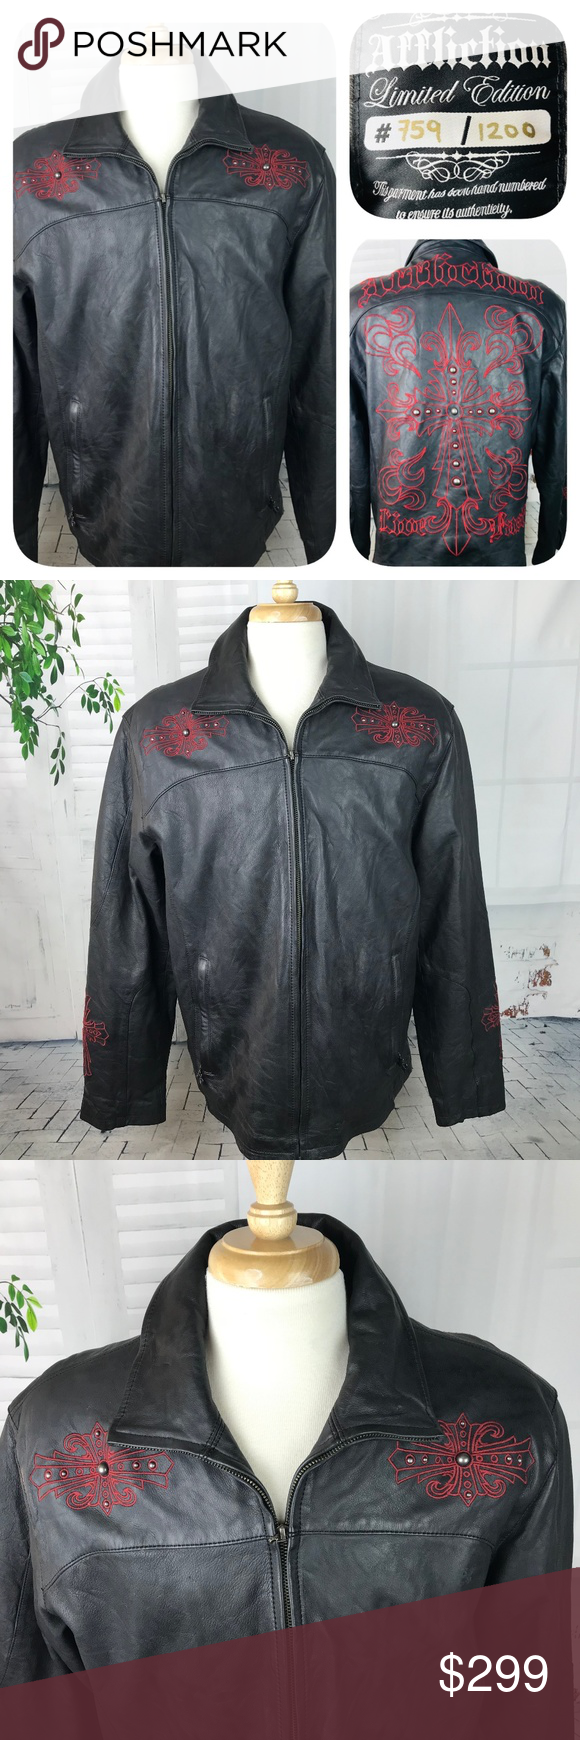 Affliction Men's Limited Edition Leather Jacket XL